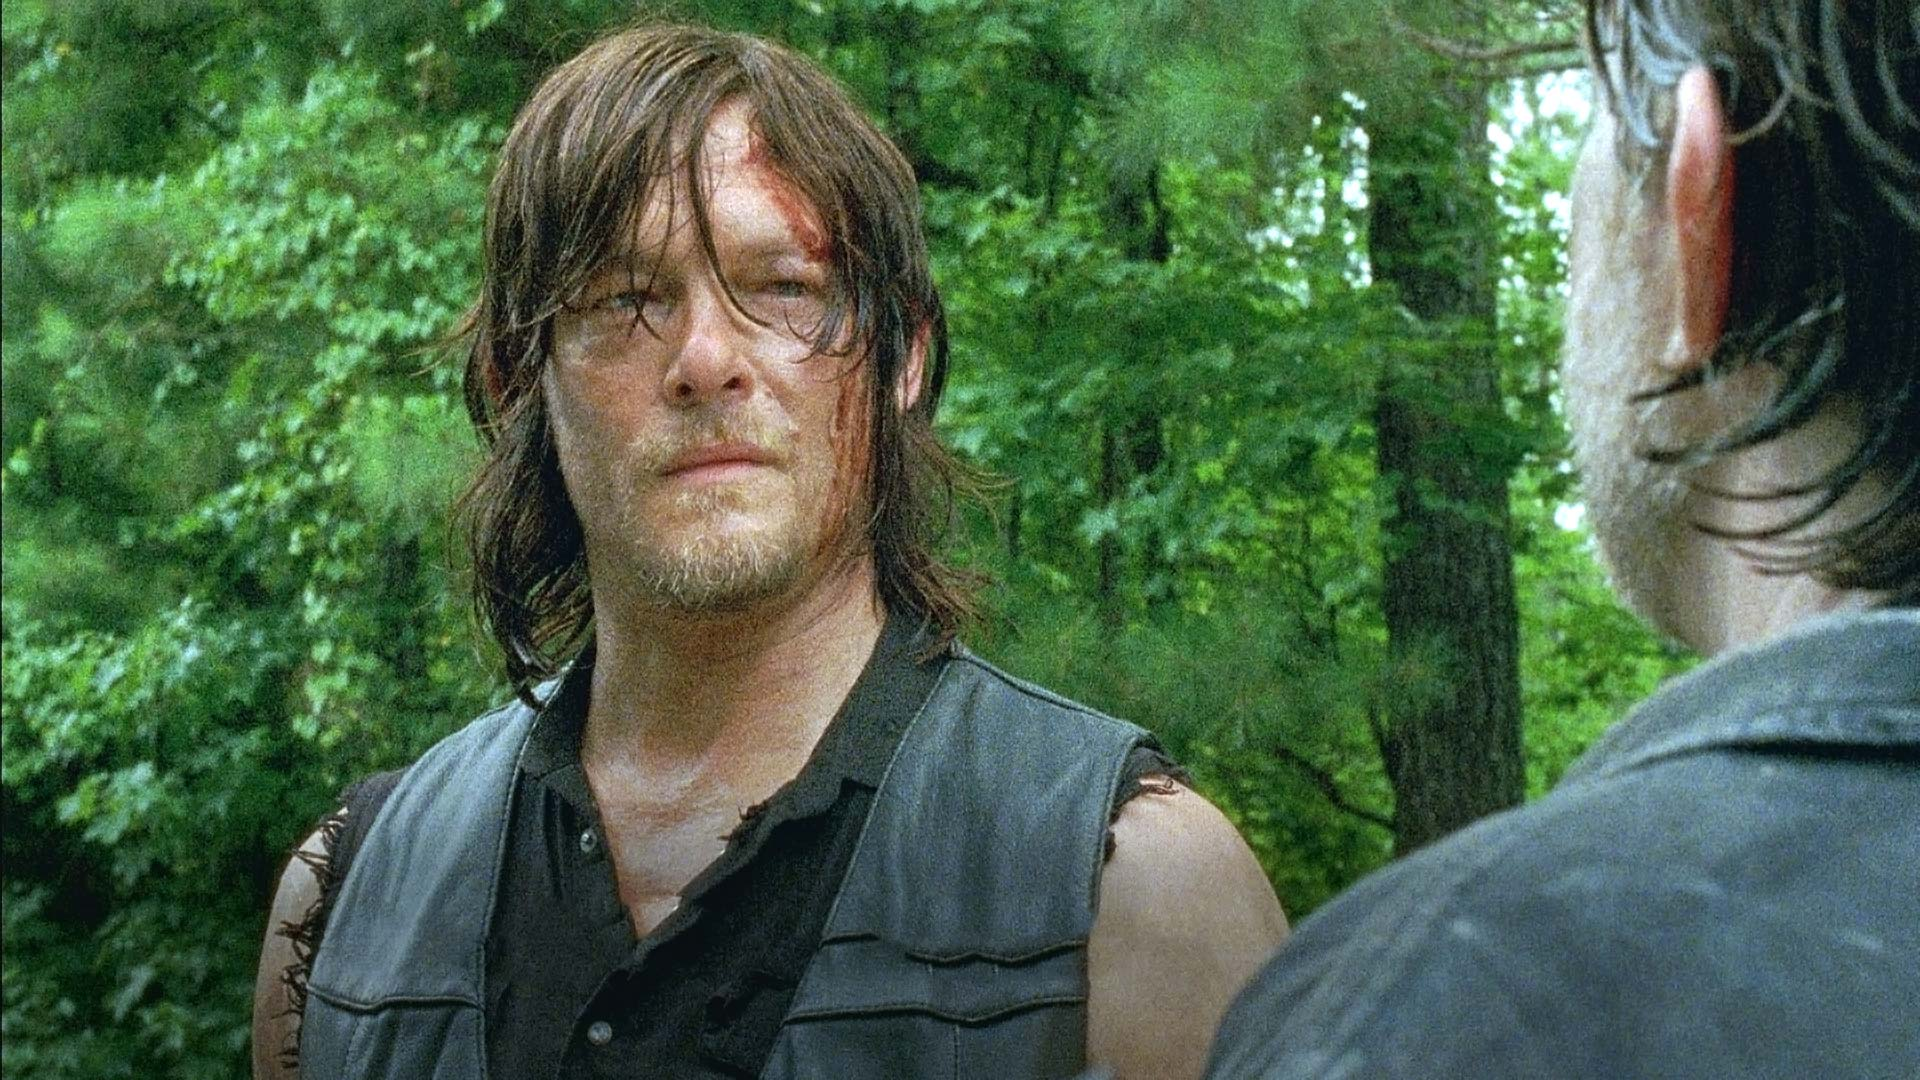 Video Extra - The Walking Dead - Promo: The New World: The Walking Dead:  Season 6 - AMC